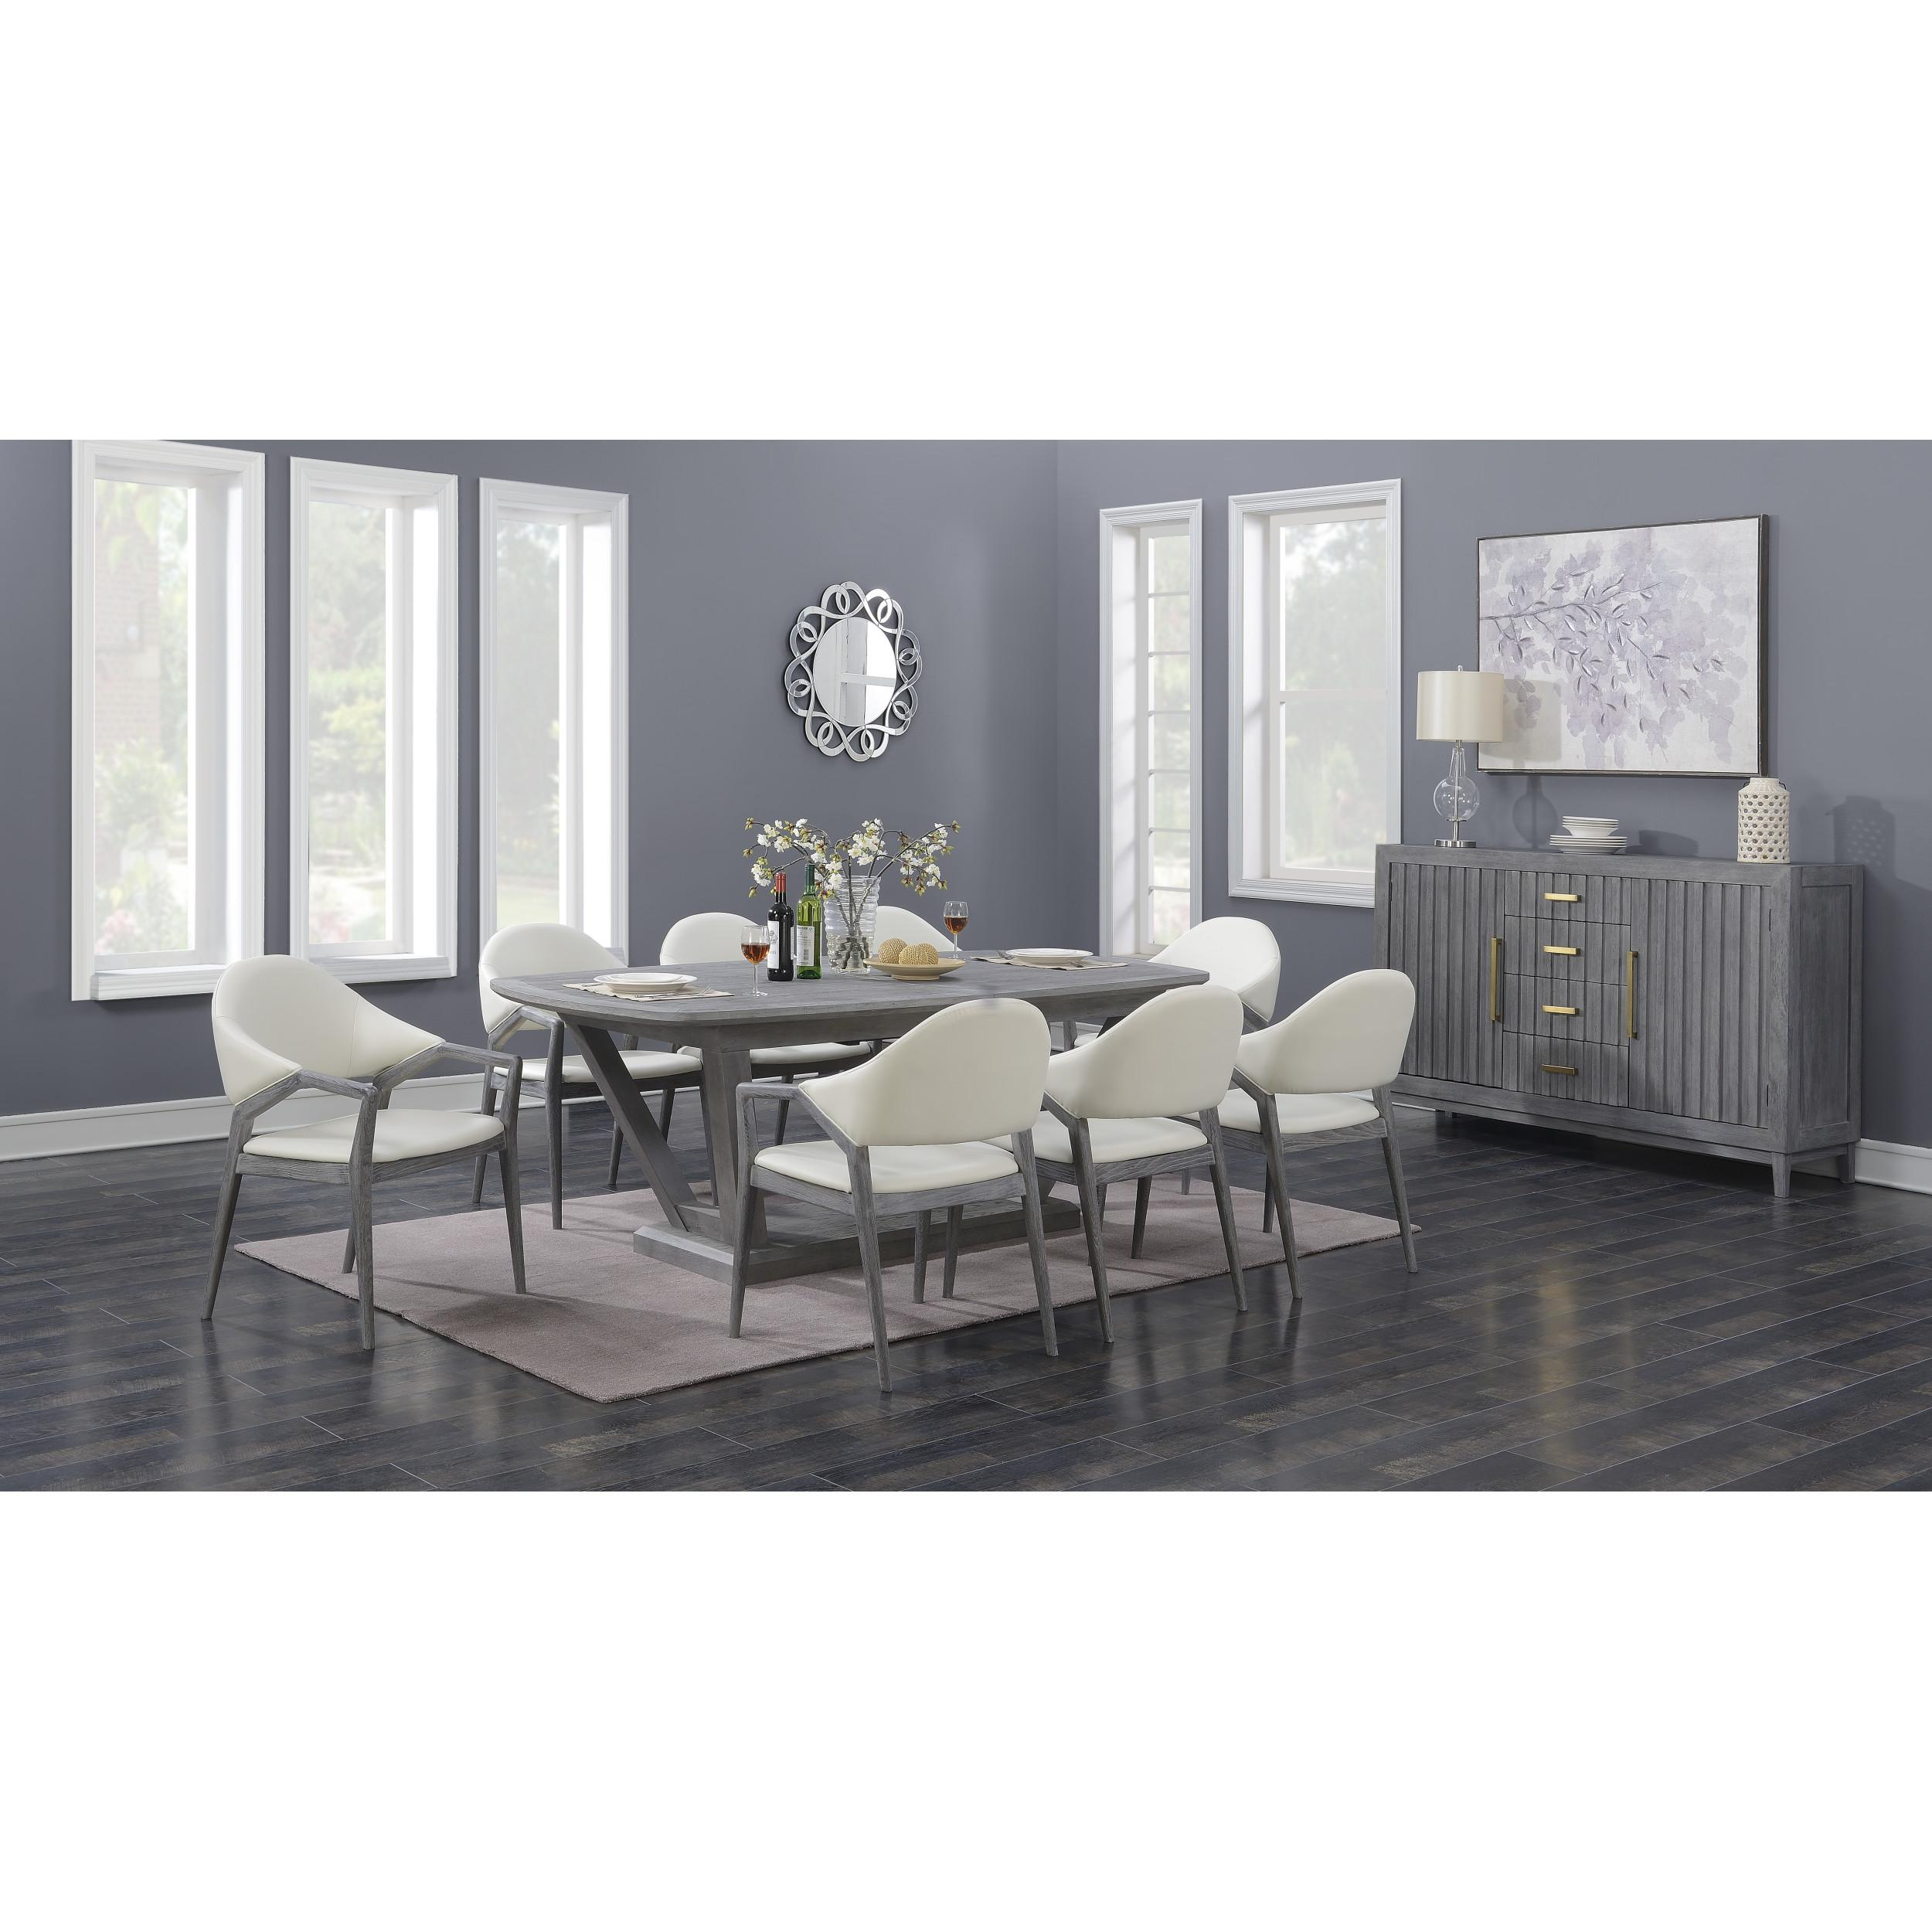 Emerald Home Carrera Gray Modern 7Pc Dining Room Set With Regard To Carrera Contemporary Black Dining Buffets (View 15 of 30)